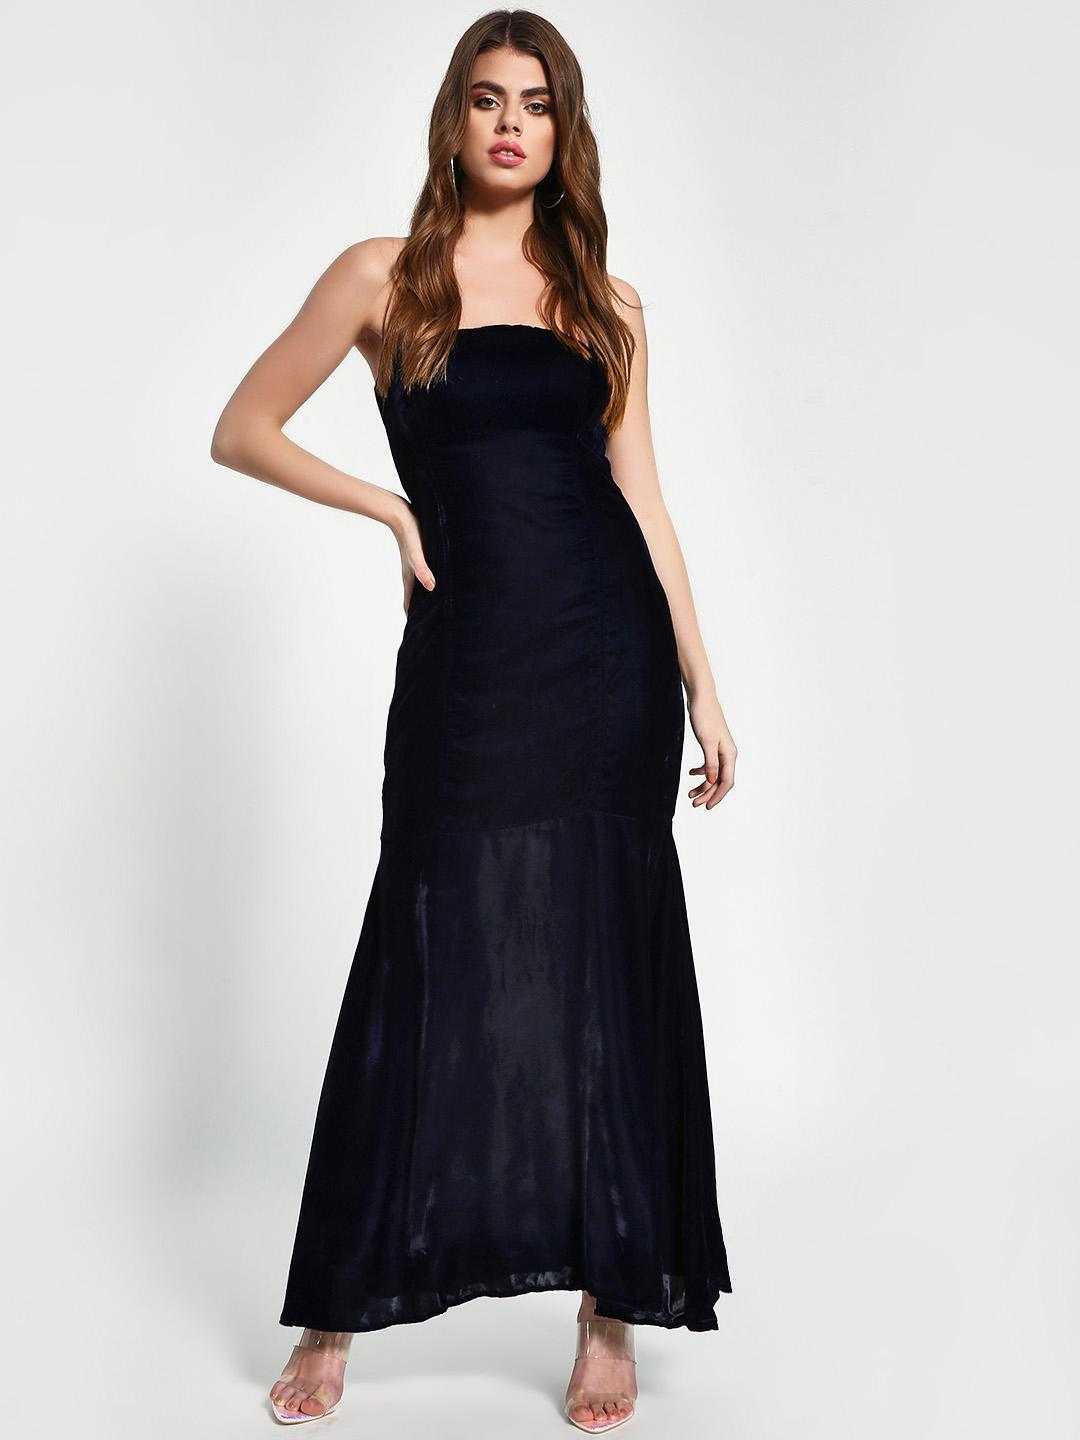 KOOVS DK NAVY Velvet Finish Evening Gown 1